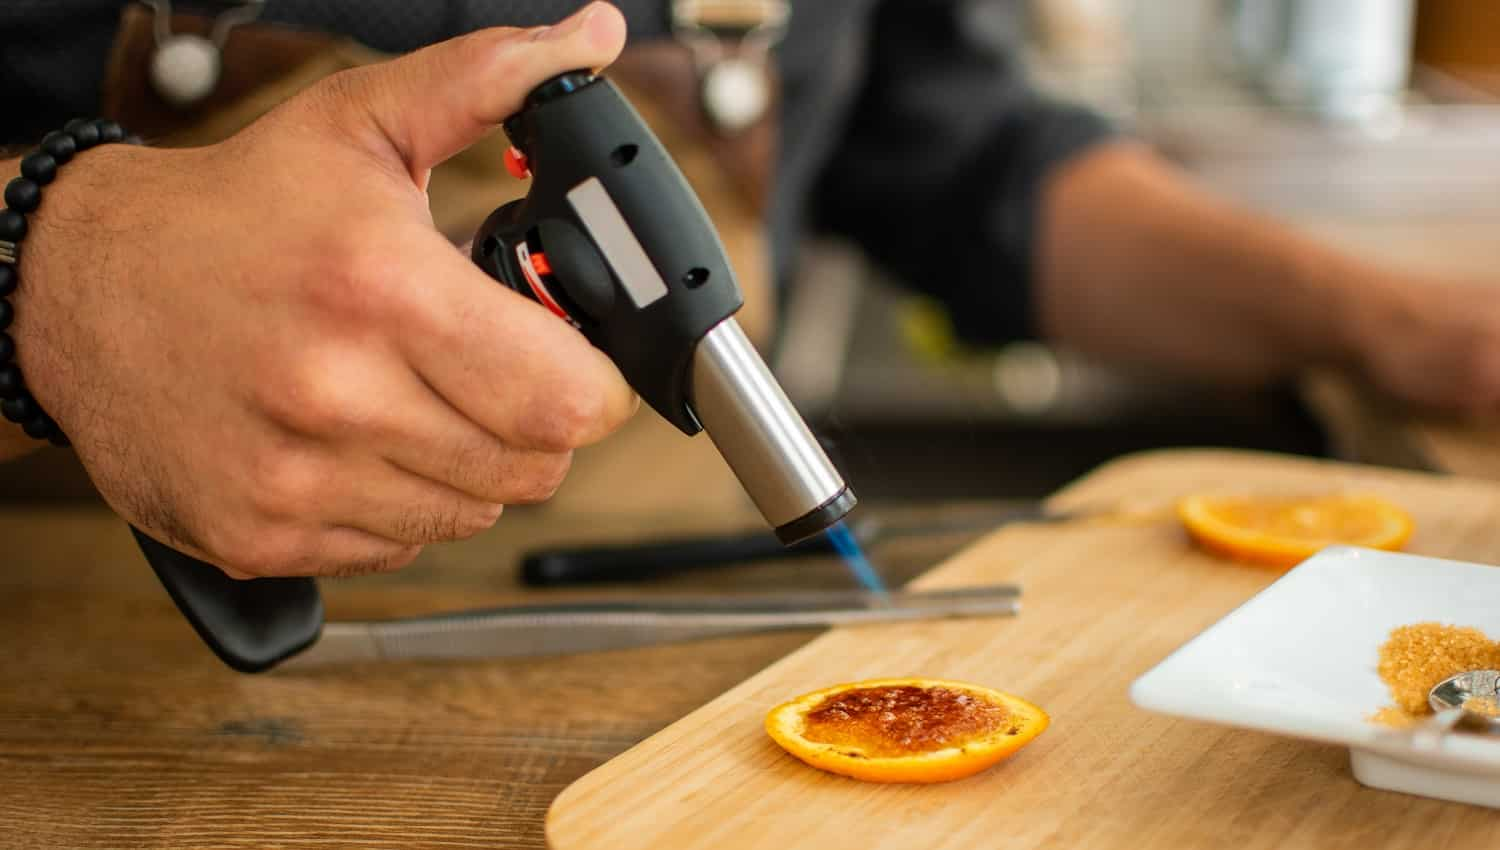 Barman burns orange with gas torch in bar for preparing cocktail. Profession concept.